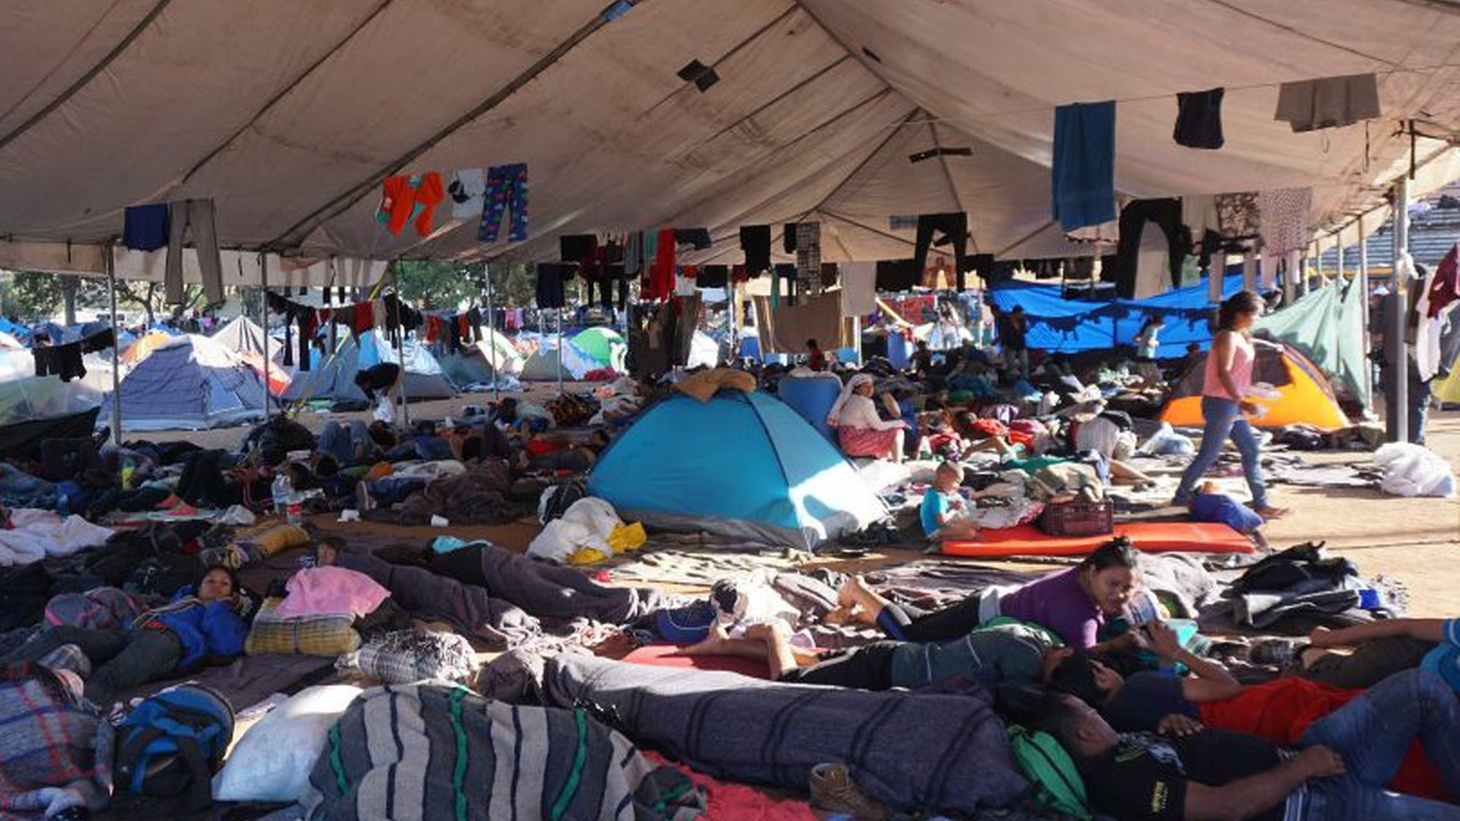 Saul Gonzalez reports from Tijuana on the migrant crisis at the border.